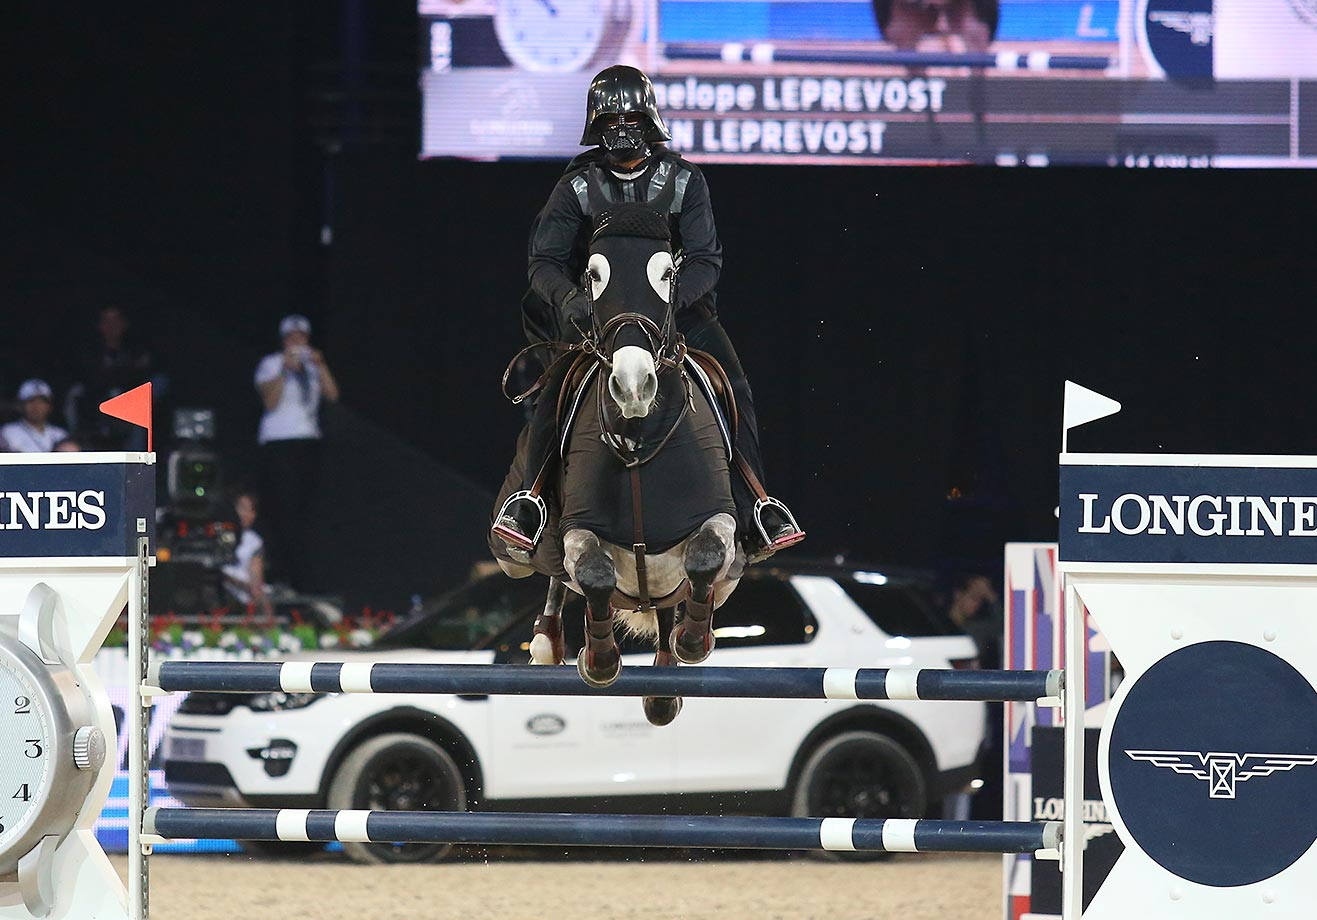 Penelope Leprevost rides as Darth Vader at the 'Style and Competition' show jumping charity event in Paris.